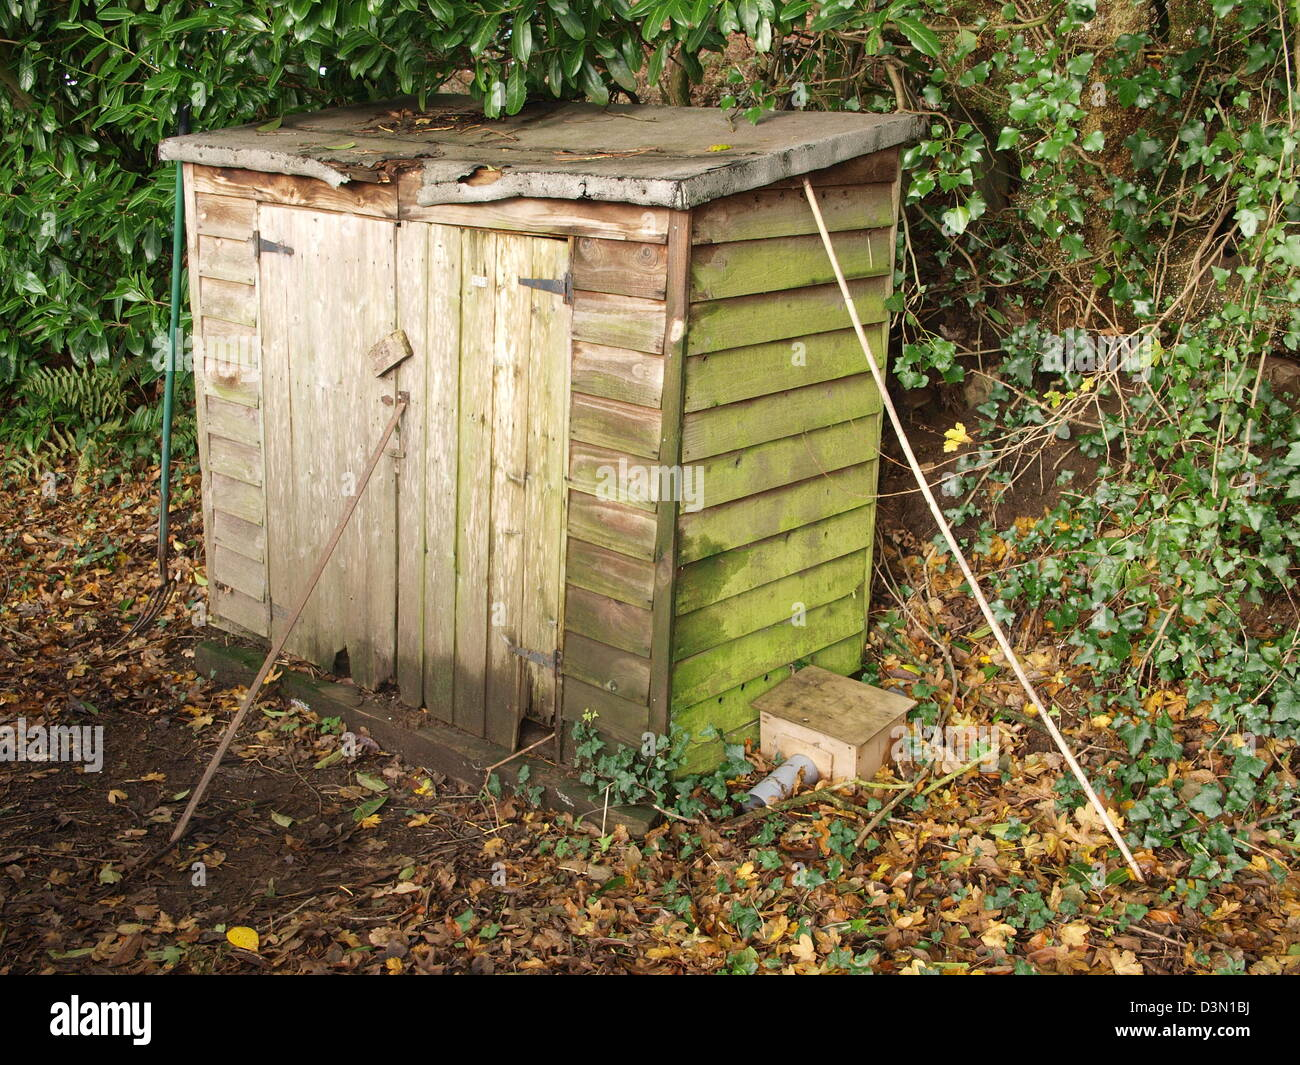 Old garden shed - Stock Image